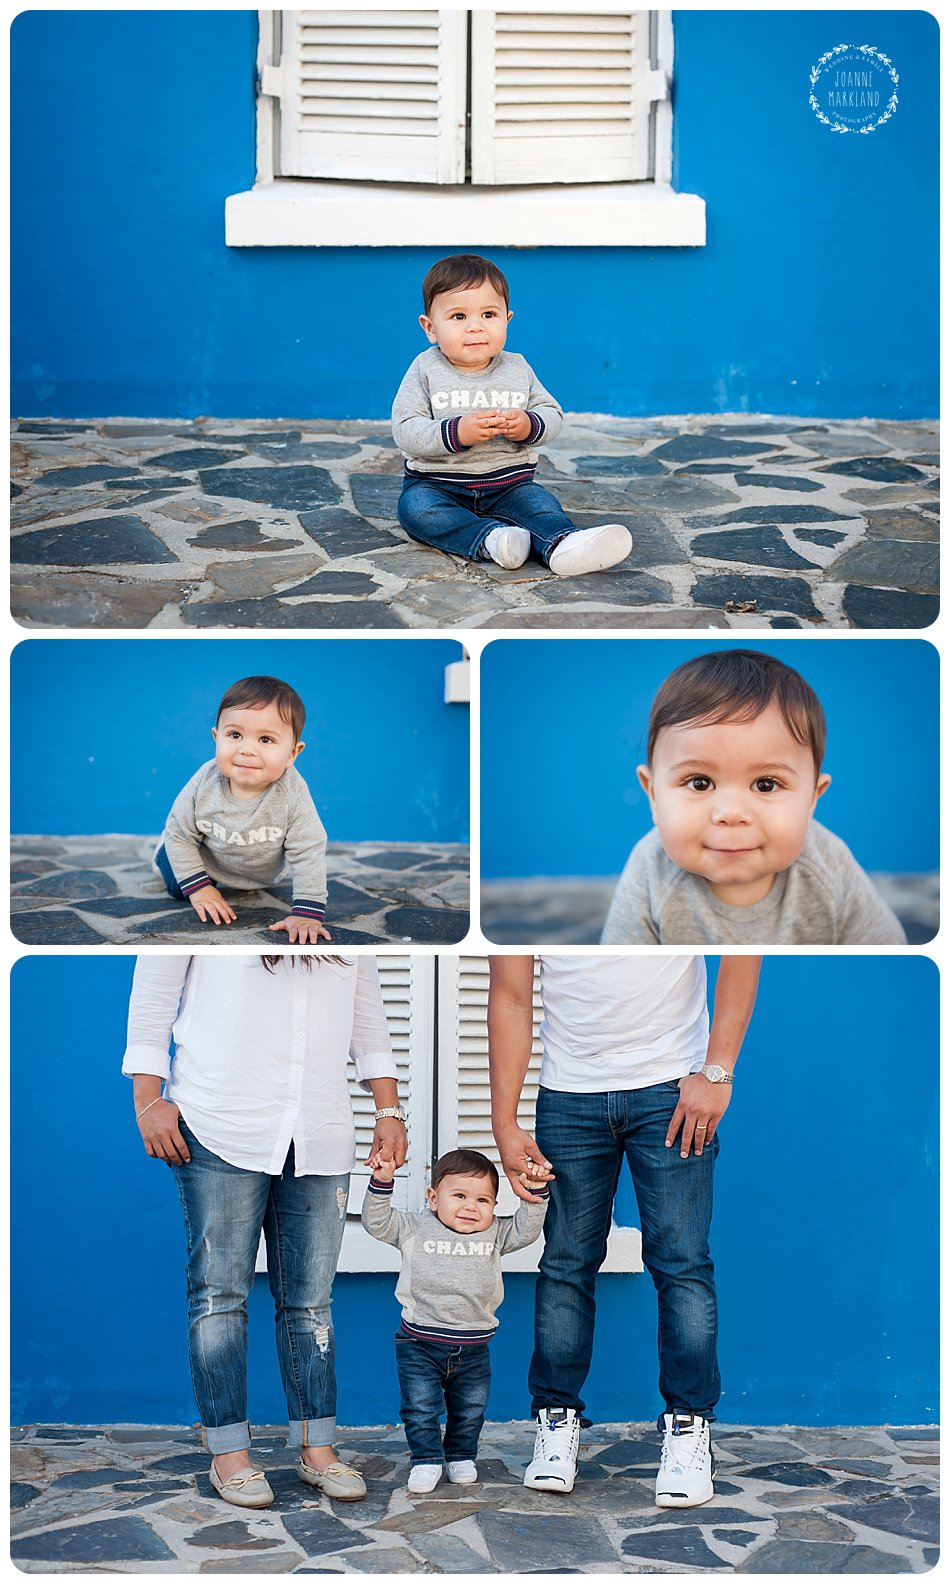 Bokaap_cape_town_family_portraits_photographer_photoshoot_joanne_markland_photography